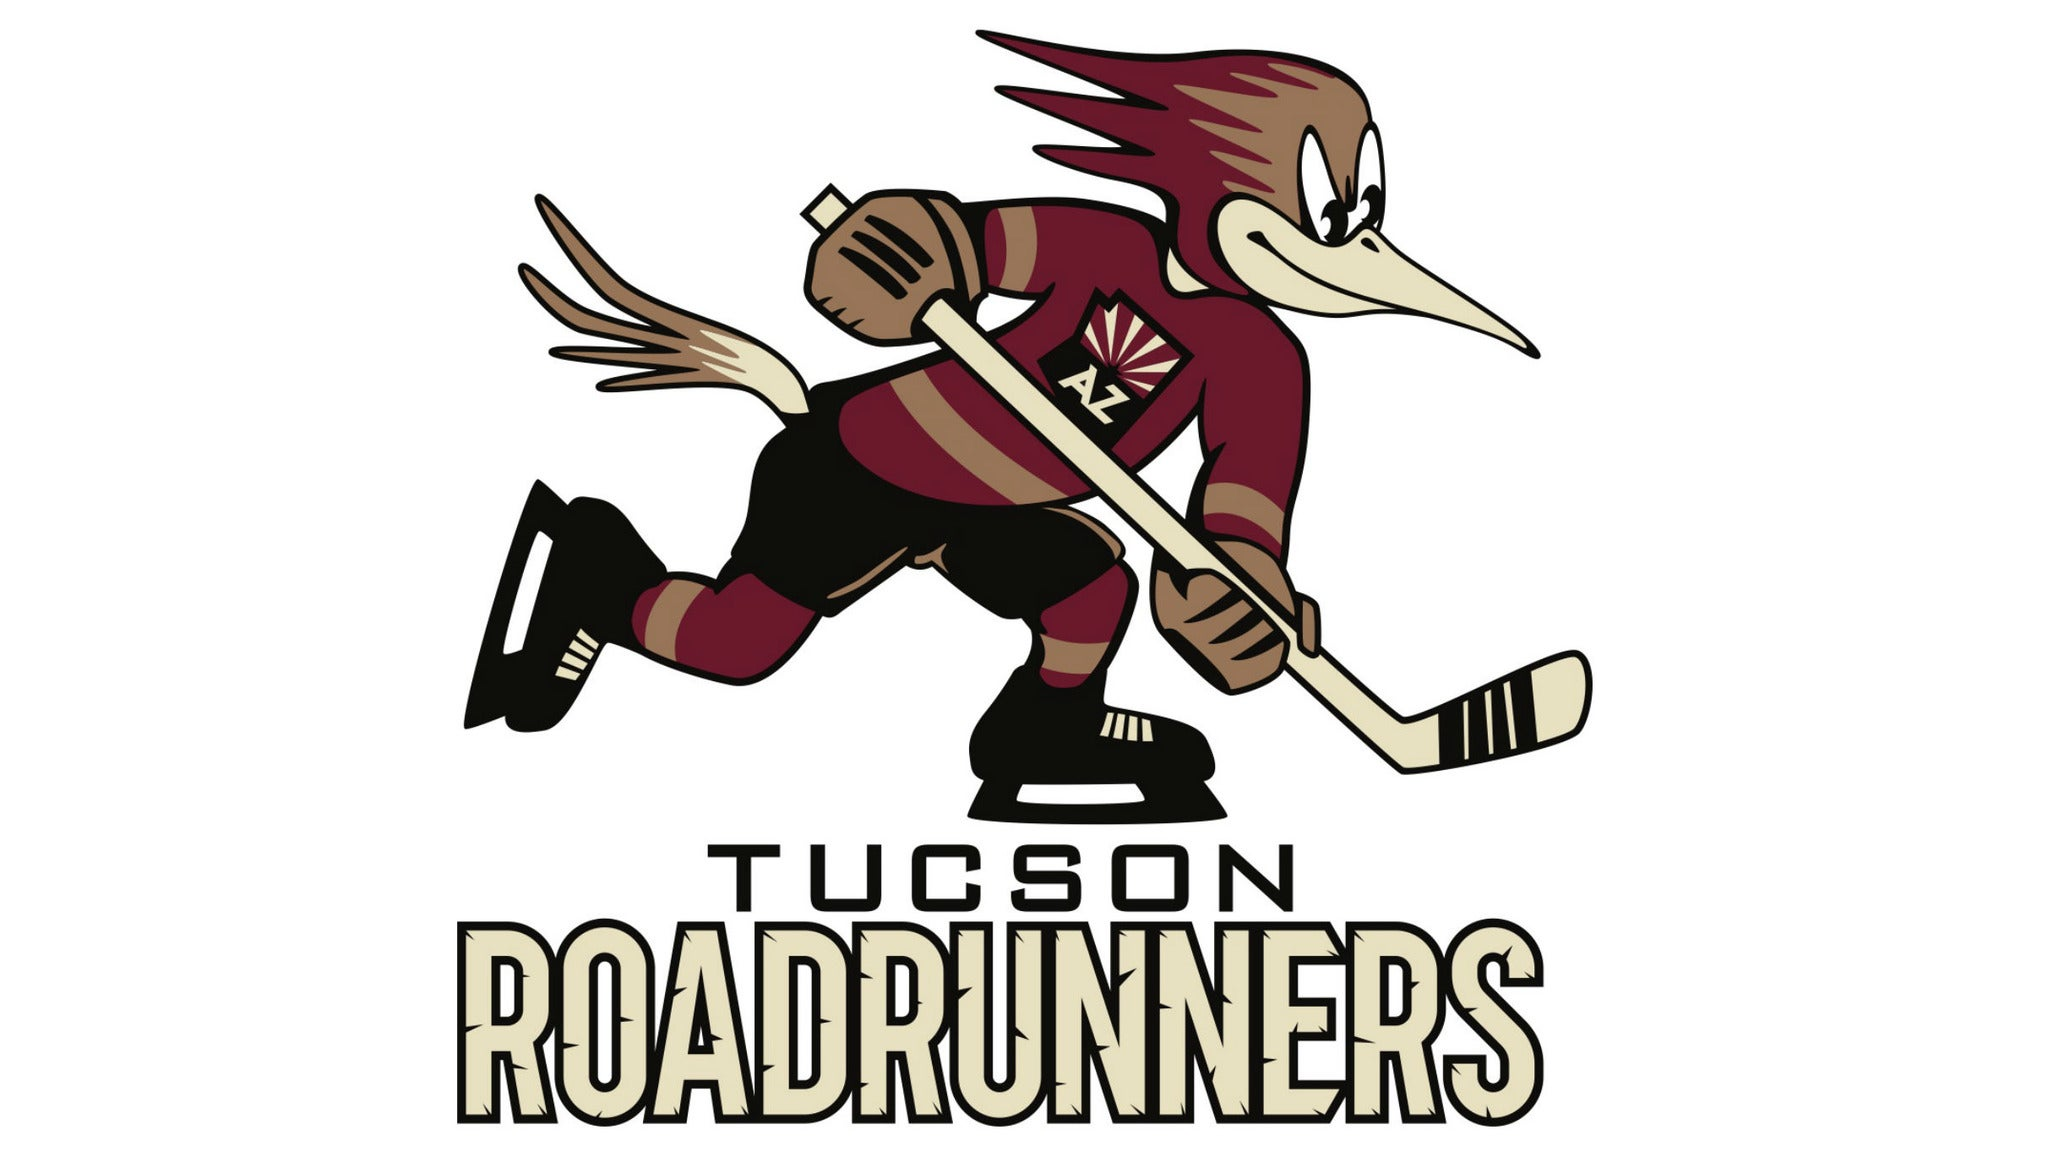 Tucson Roadrunners at Tucson Arena